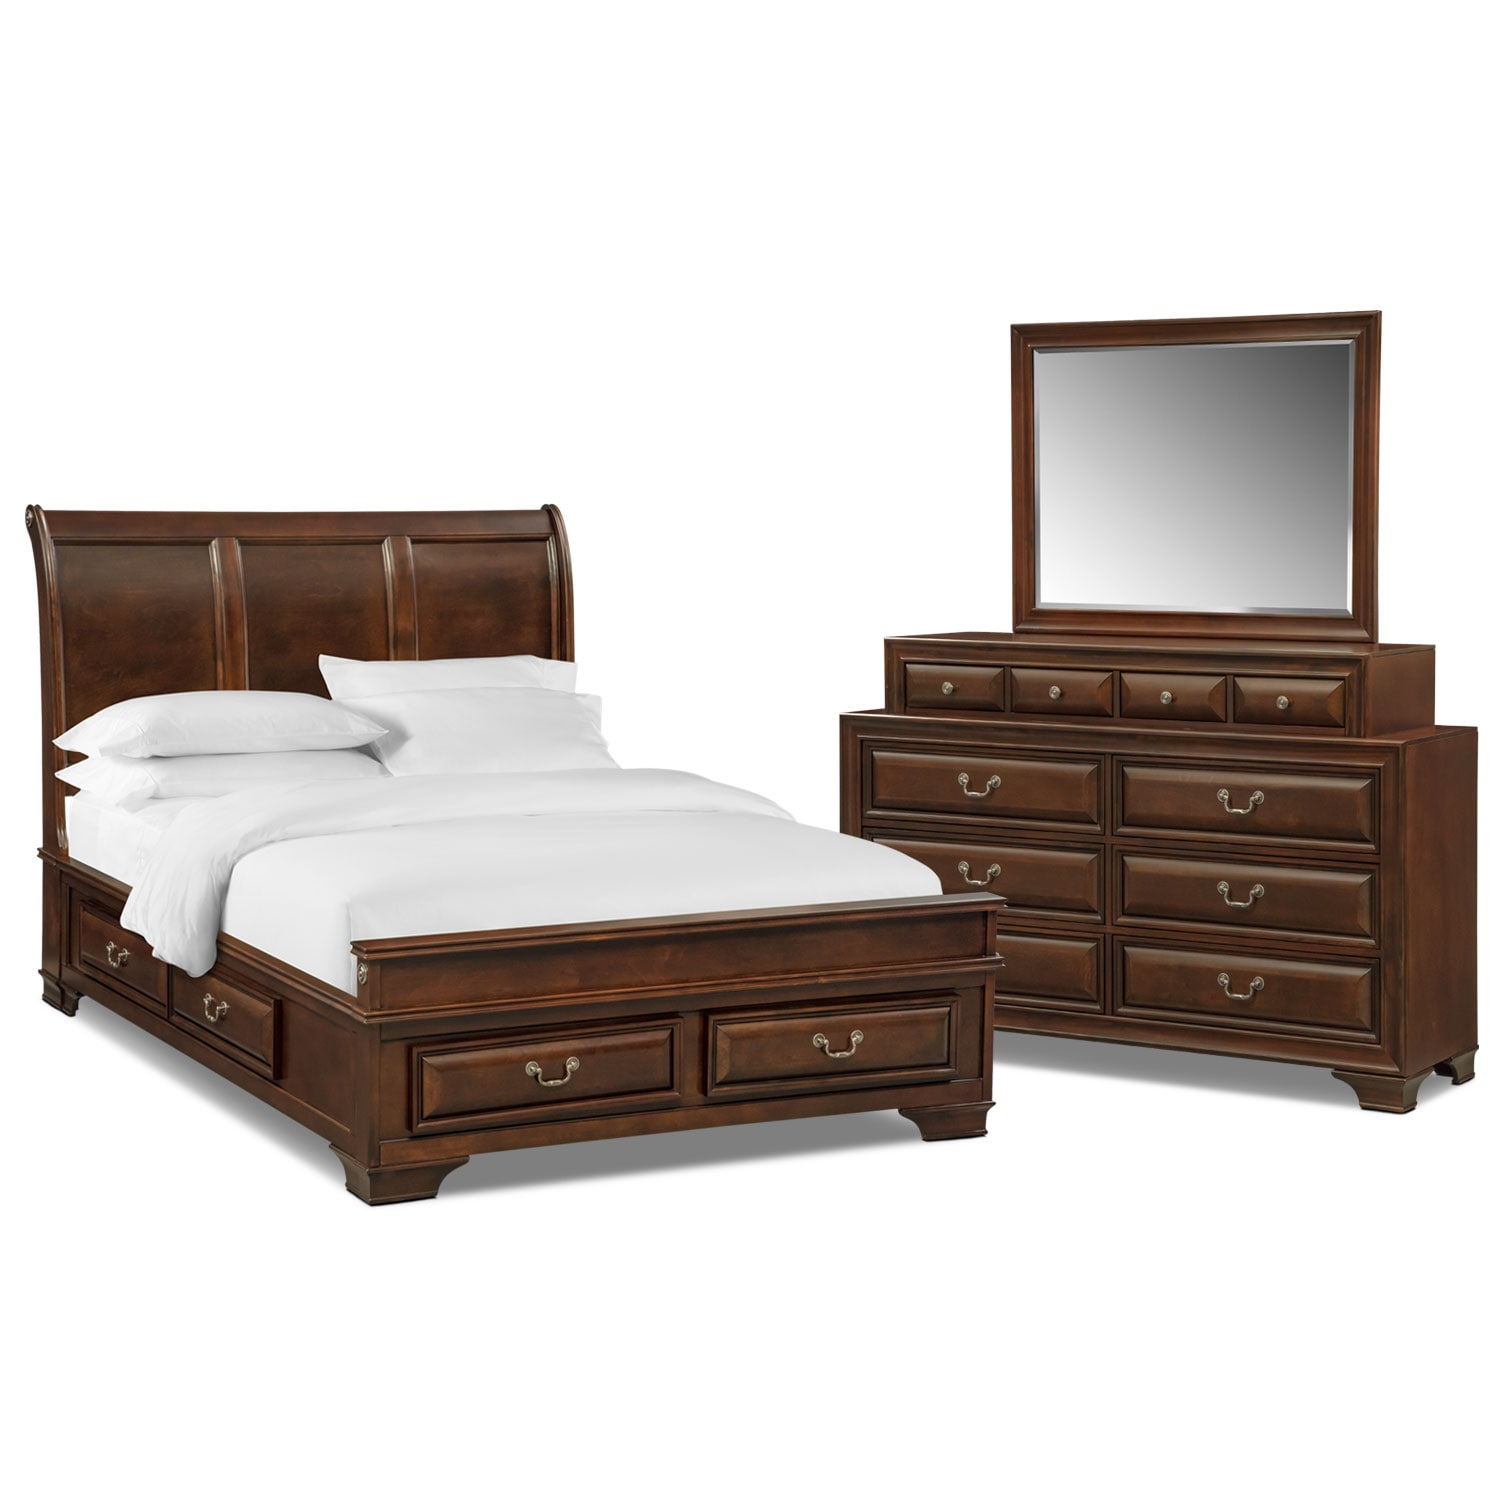 Bedroom Furniture - Sanibelle 5-Piece King Storage Bedroom - Mahogany